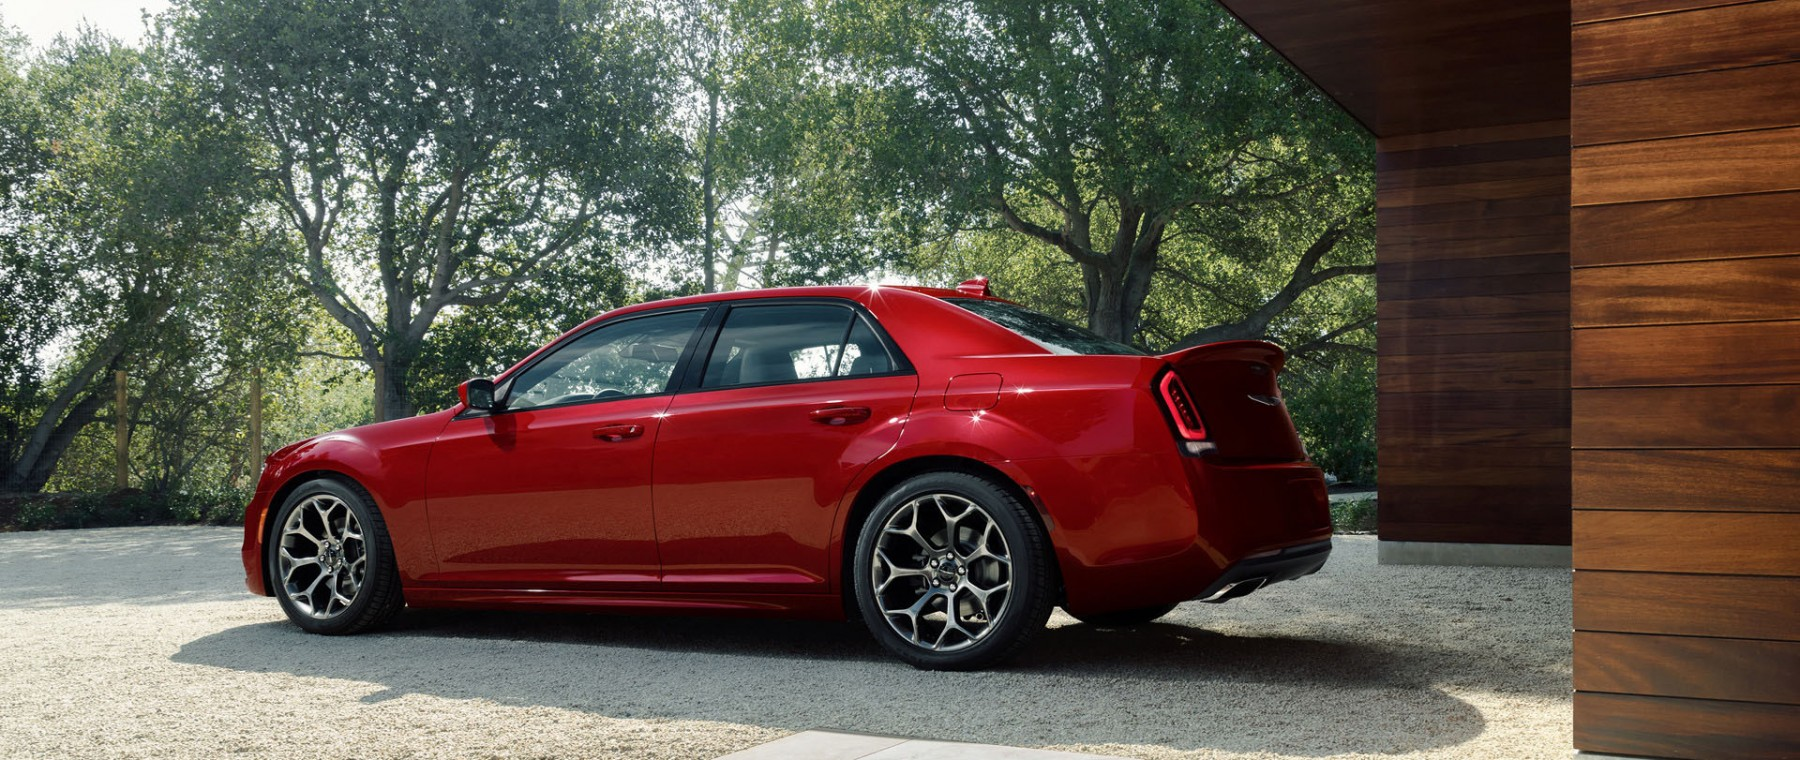 Chrysler 300 Lease New 2015 Chrysler 300 Best Deals And Lease Offers